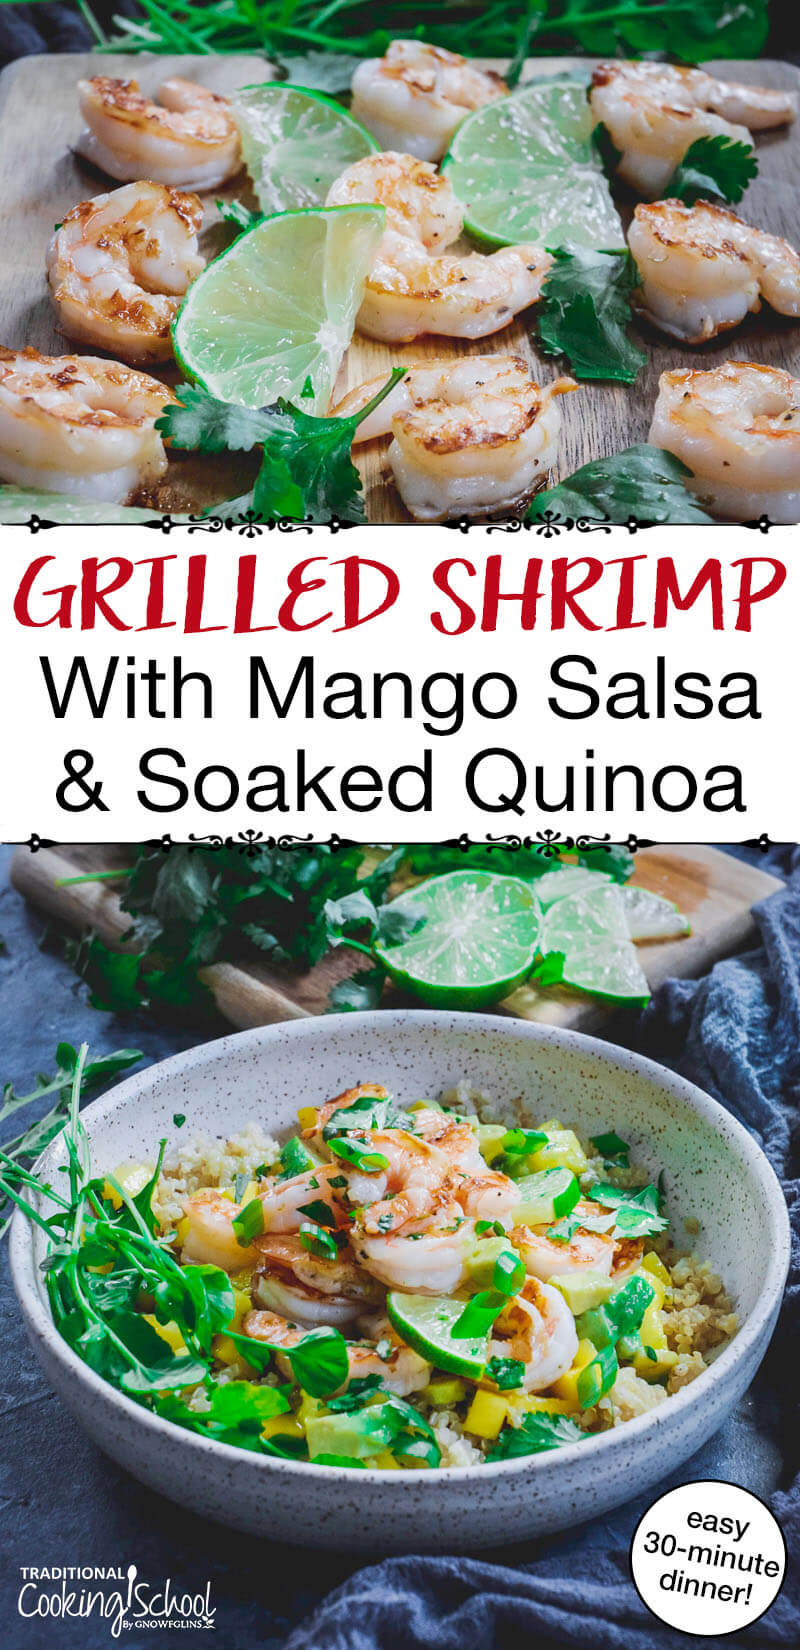 """photo collage of grilled shrimp, mango salsa, lime slices, and fresh greens, with text overlay: """"Grilled Shrimp With Mango Salsa & Soaked Quinoa (easy 30-minute dinner!)"""""""